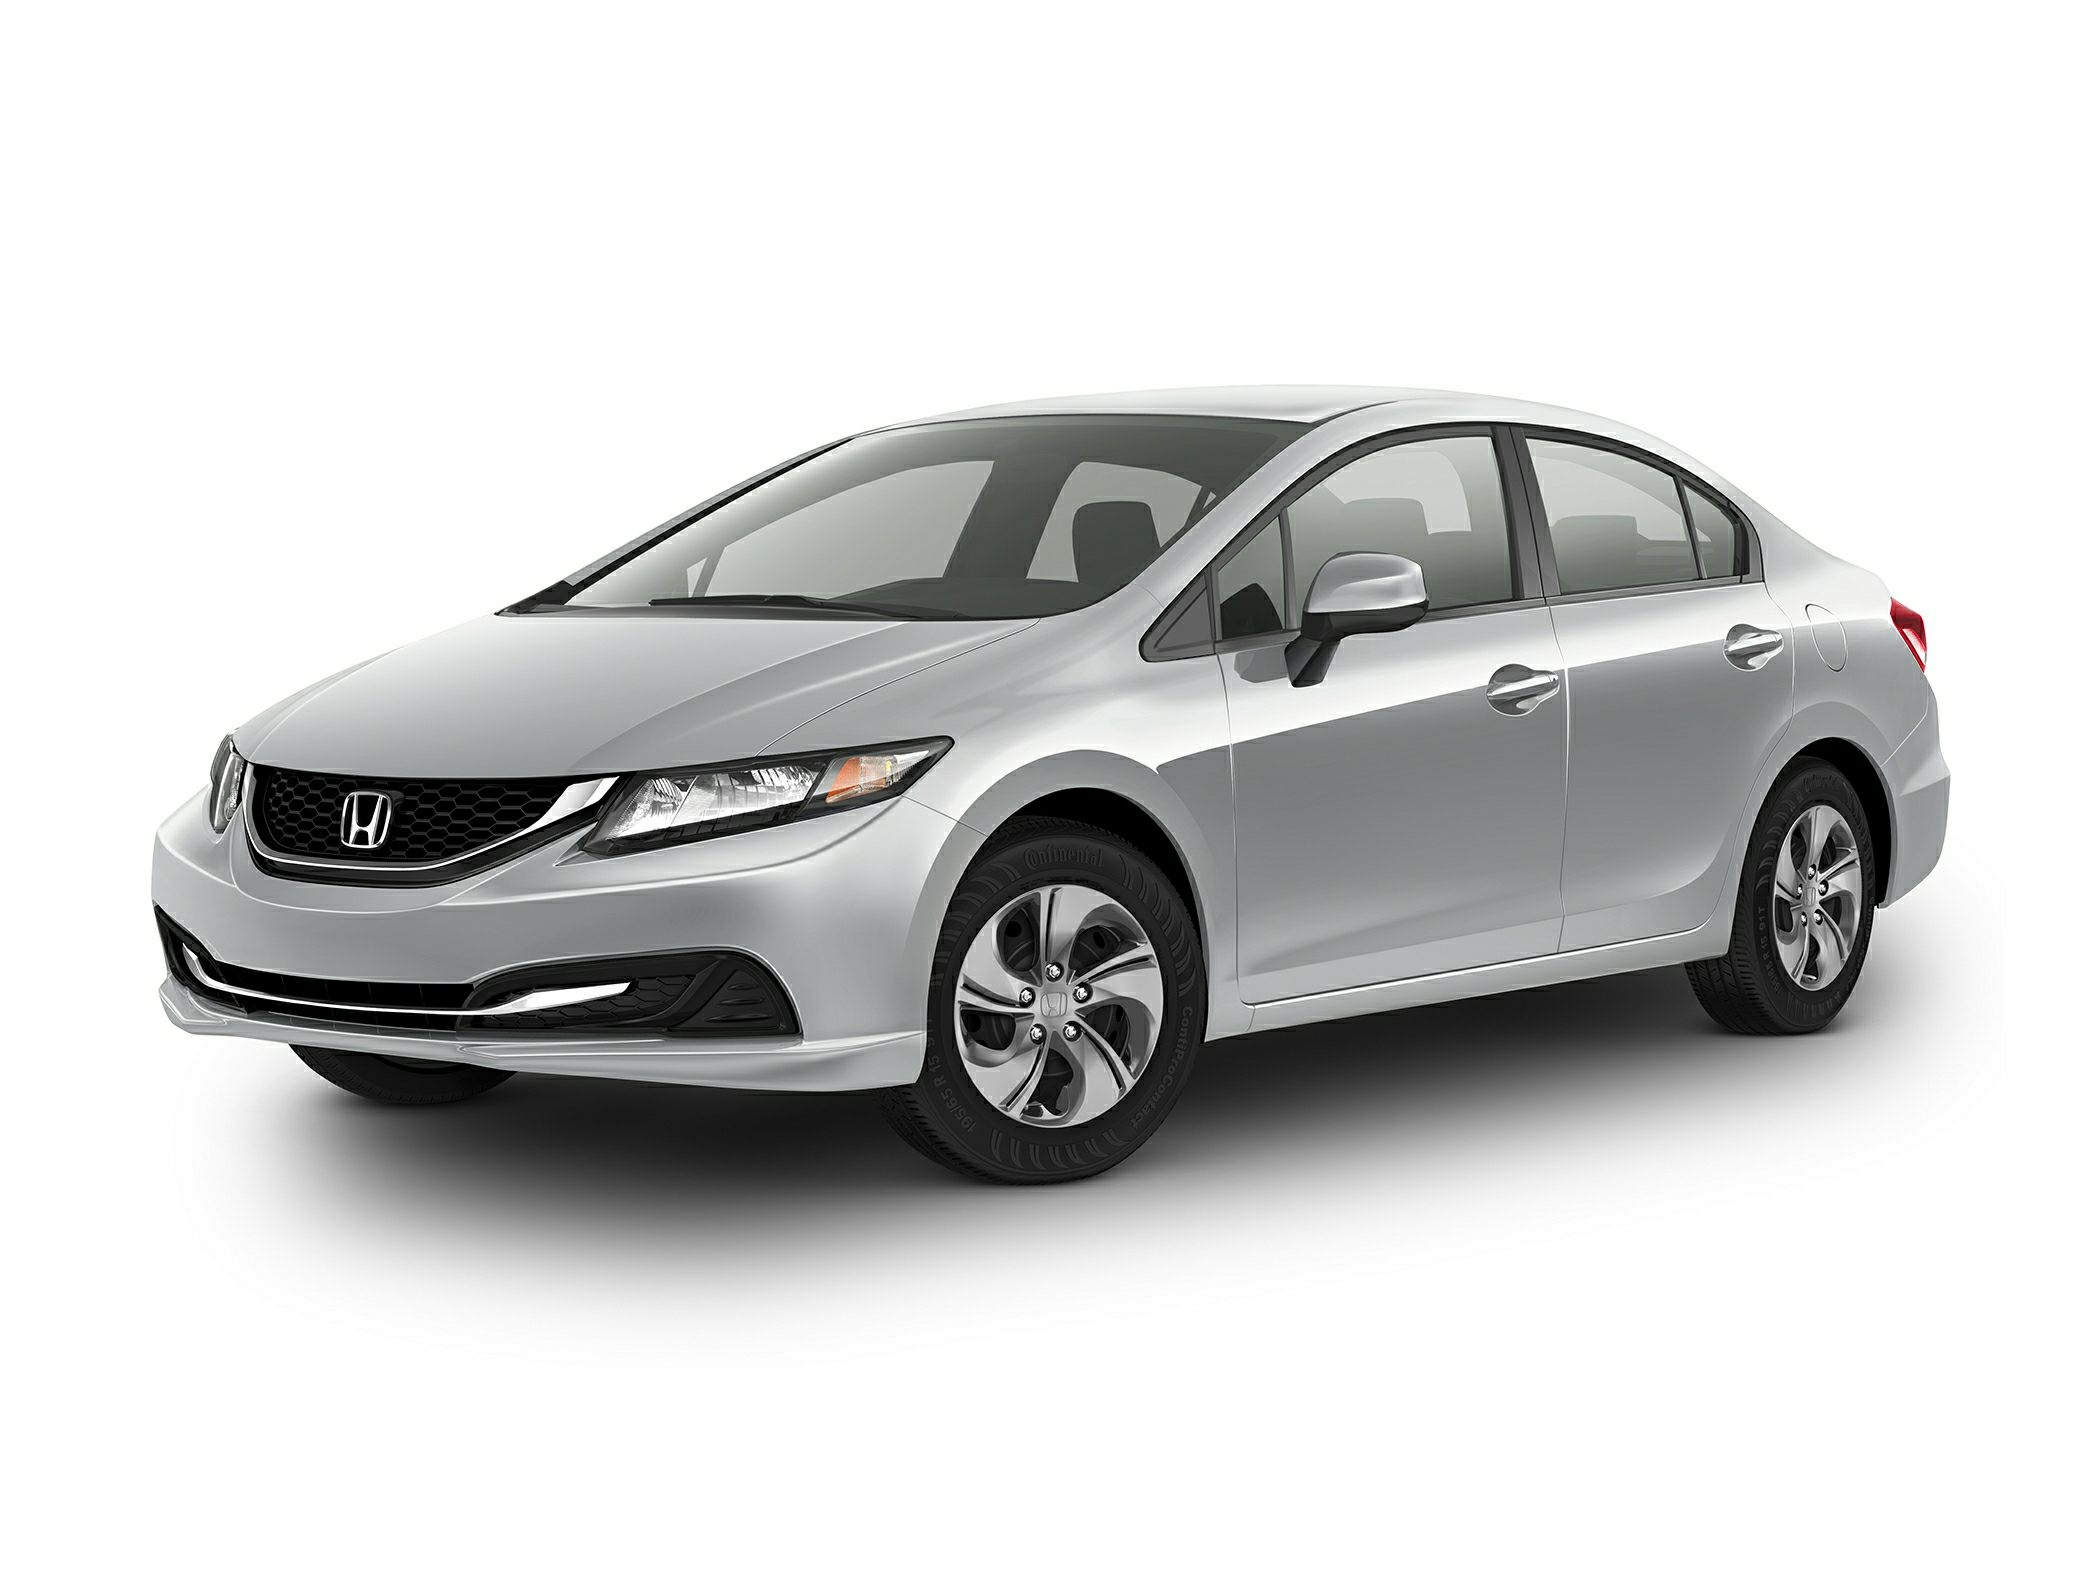 honda civic 2015 price cars for 3000 latest family friendly 2015 honda civic invoice price